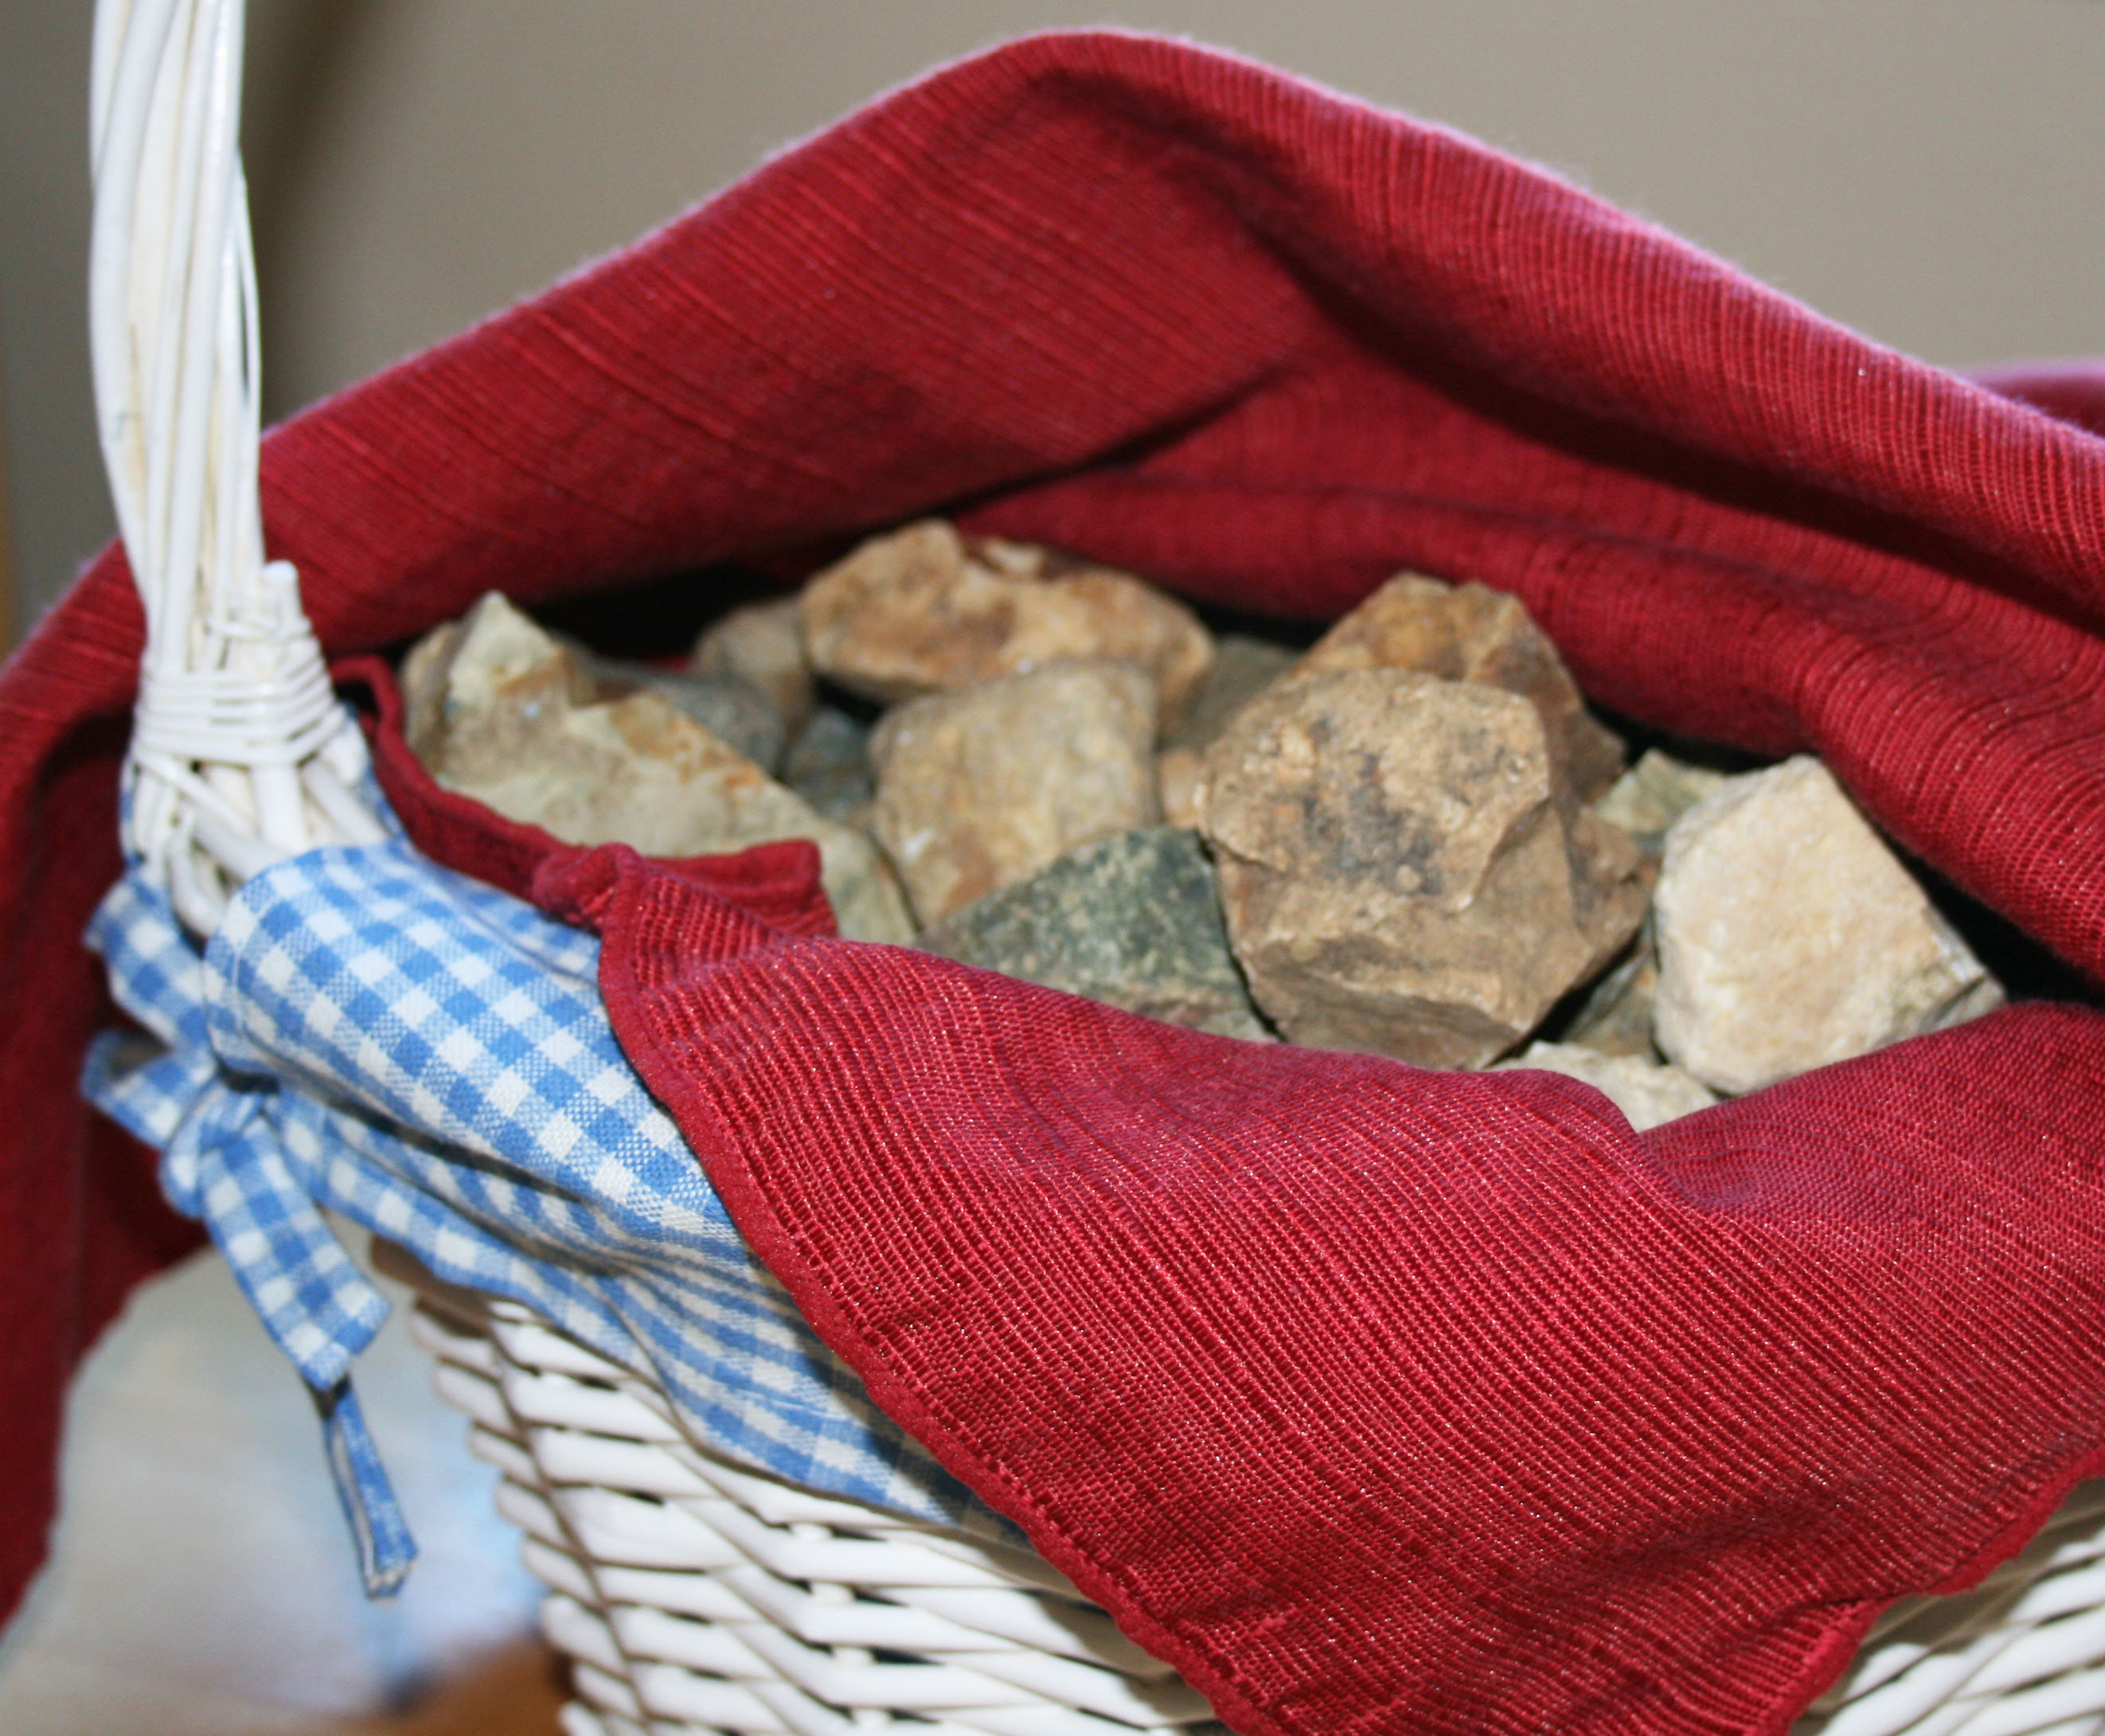 Basket of Rocks for an Easter Tradition